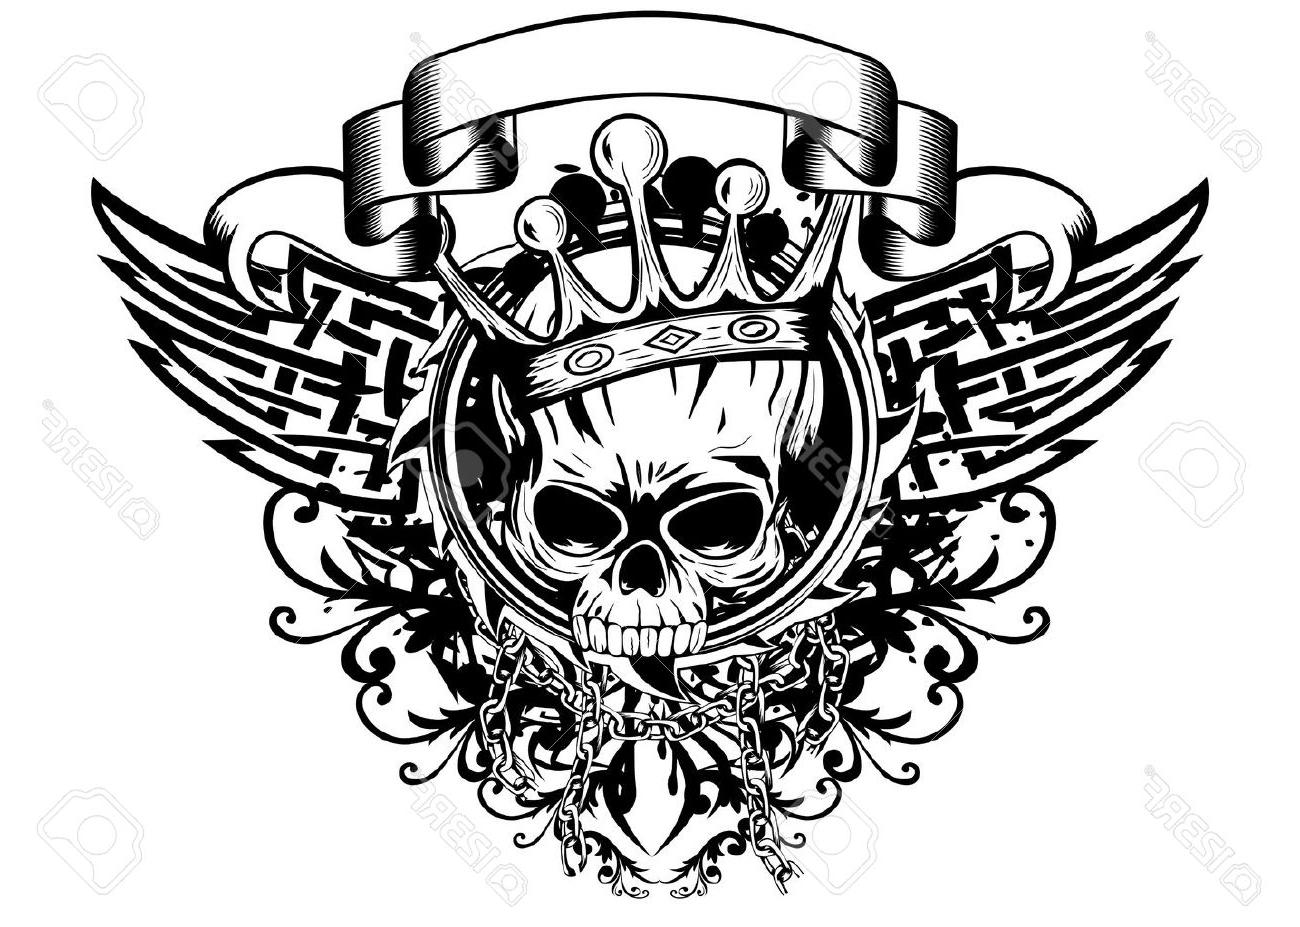 1300x927 Hd Illustration Skull With Crown Tribal Wings Photos